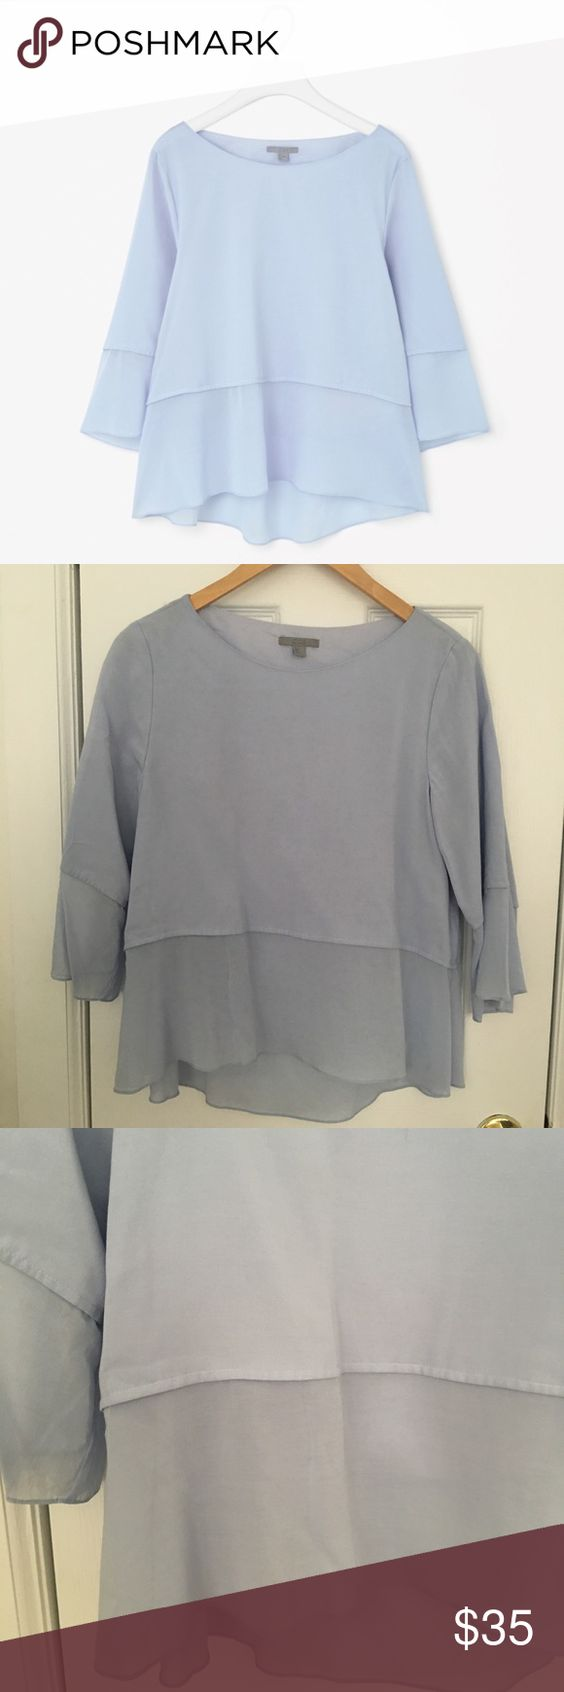 COS Sheer Contrast Top, Size 4 Such a lovely, light, and feminine top from minimal Scandinavian brand COS. A soft light blue in color. US women's size 4 (fits like an S). Machine wash cold. Shell: 79% cotton, 21% cupro. Lining: 100% cotton. Only worn twice, in great condition. COS Tops Blouses